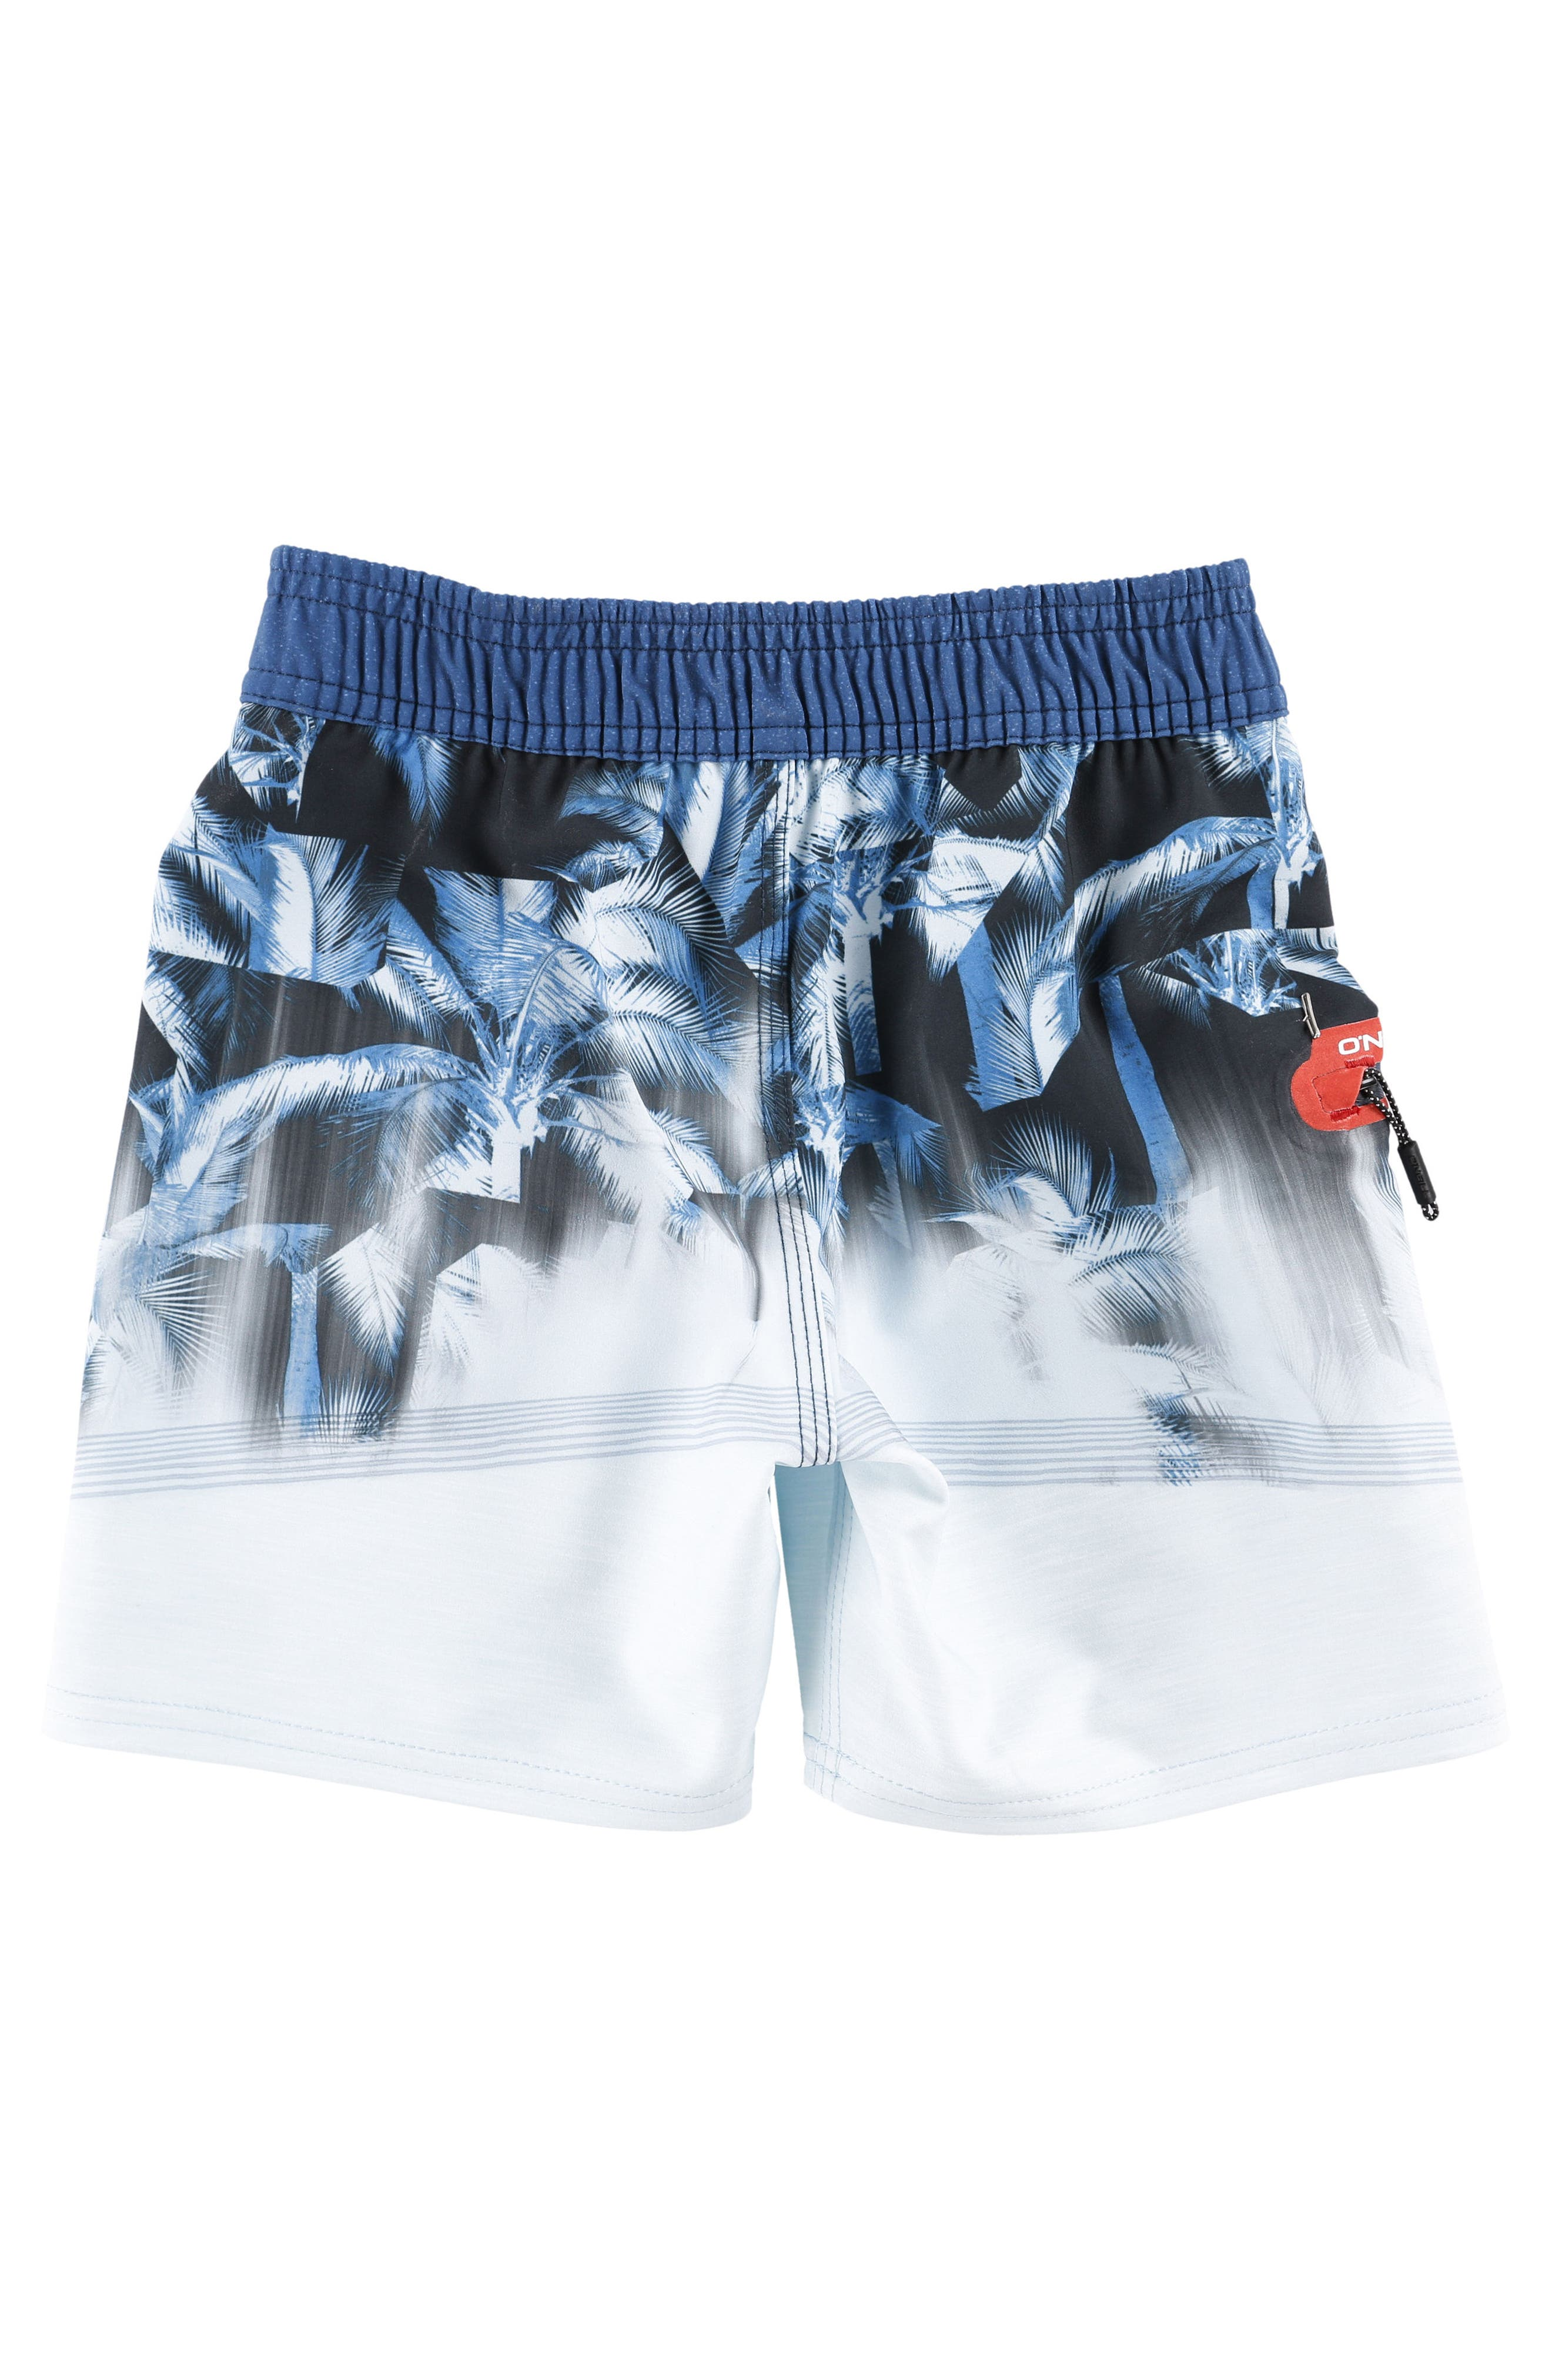 Hyperfreak Board Shorts,                             Alternate thumbnail 4, color,